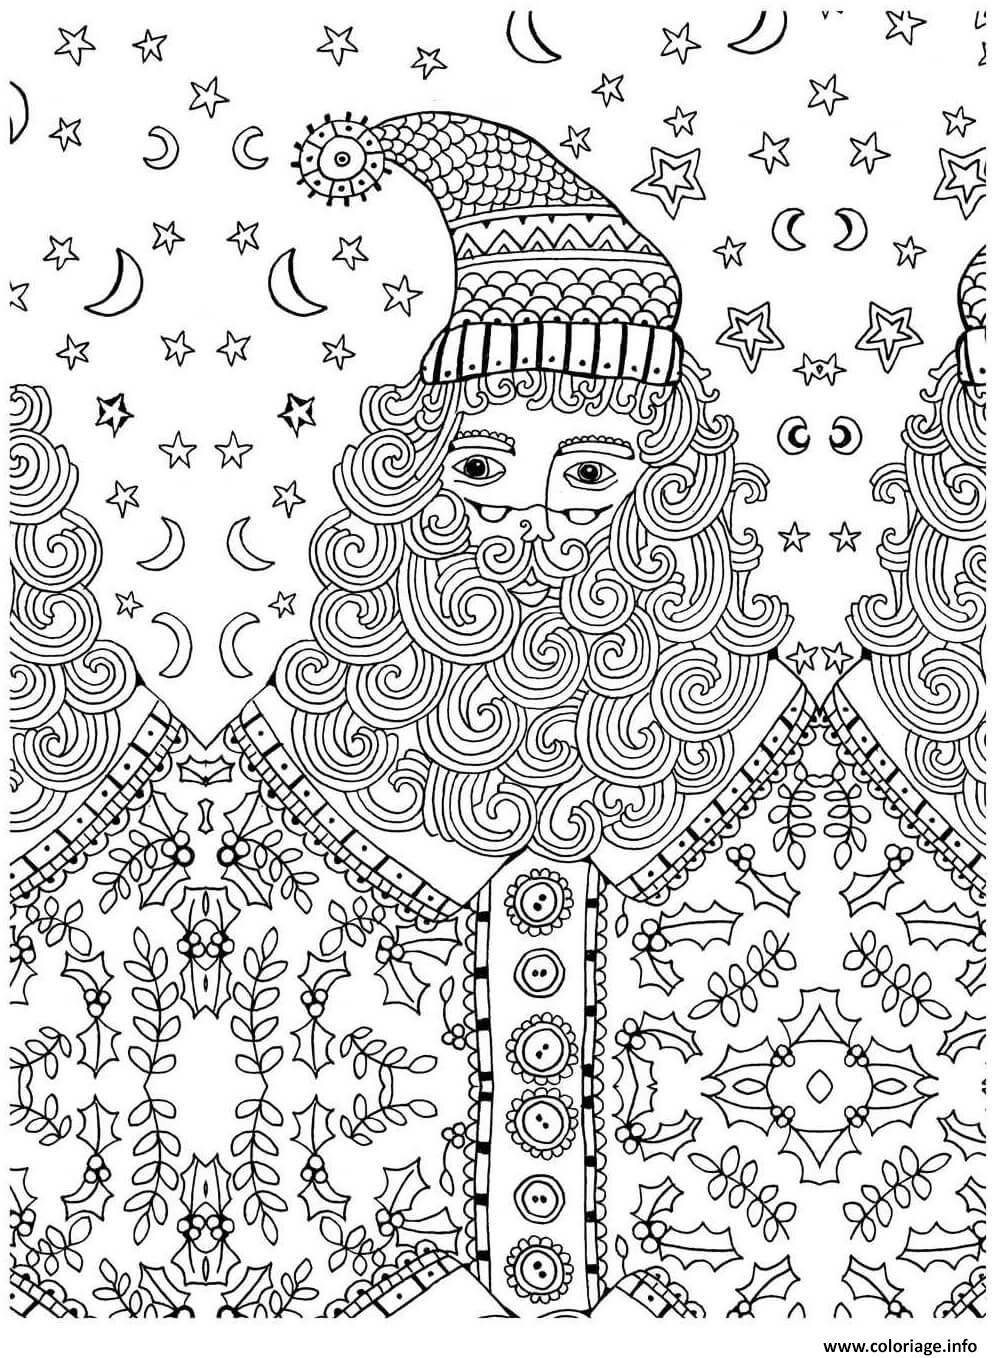 Coloriage pere noel adulte anti stress - Coloriage imprime ...